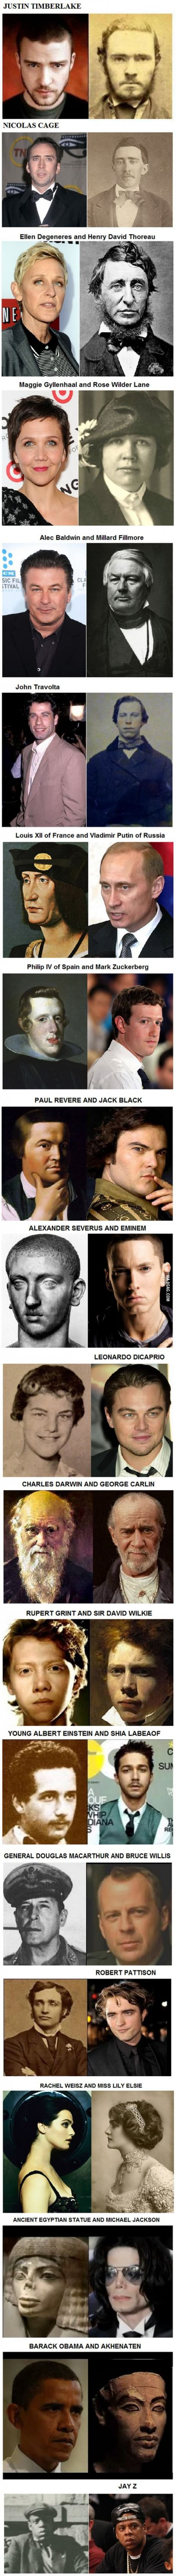 20 Celebrities And Their Historical Doppelgangers...that's just creepy (and awesome, at the same time)!!!